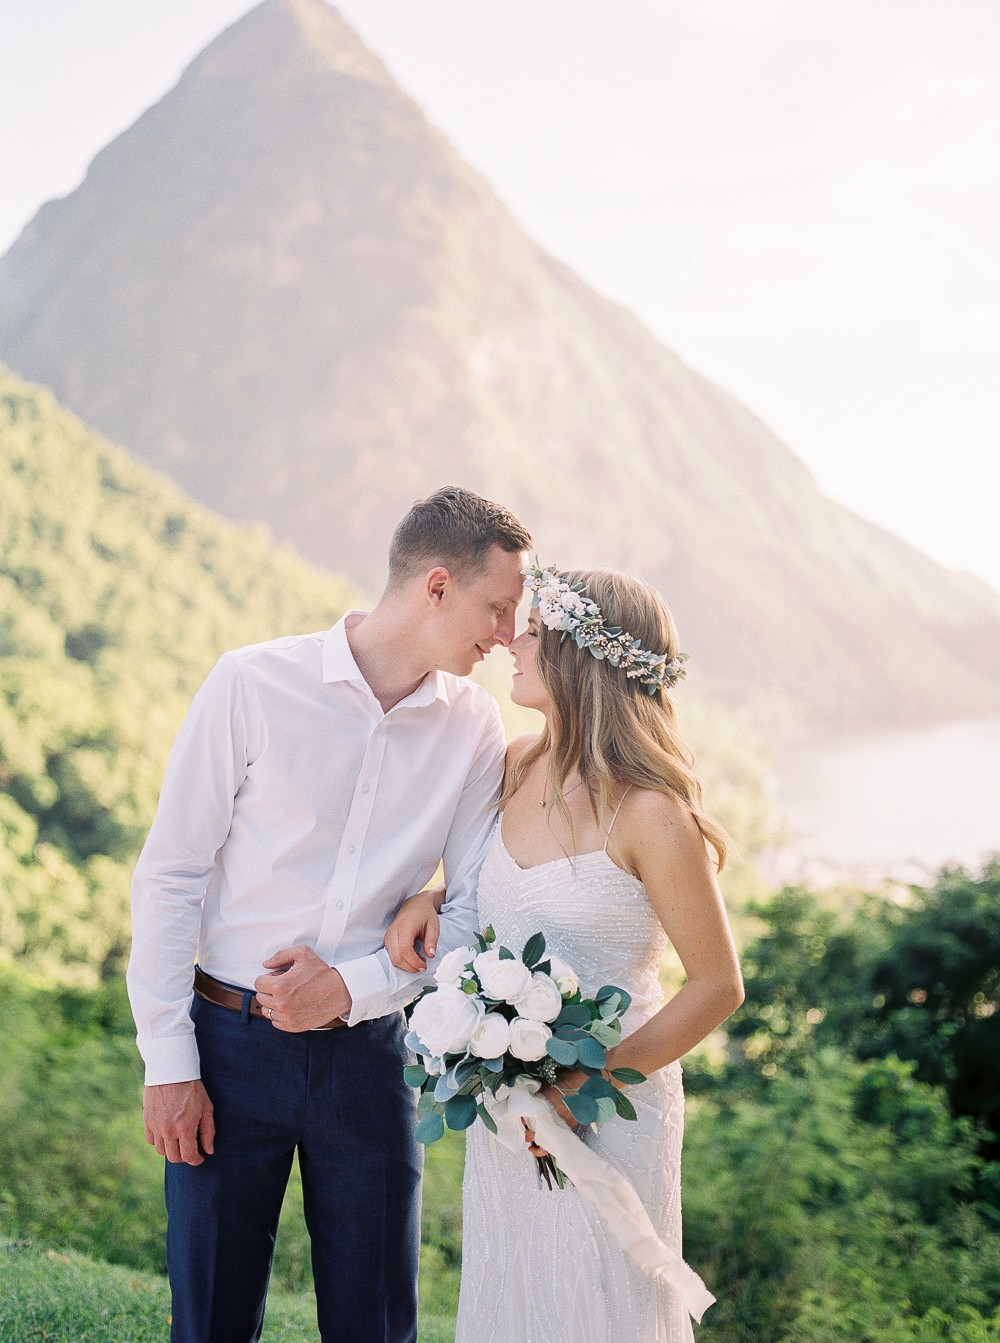 Bonnie and Eric's Scenic St. Lucia Elopement